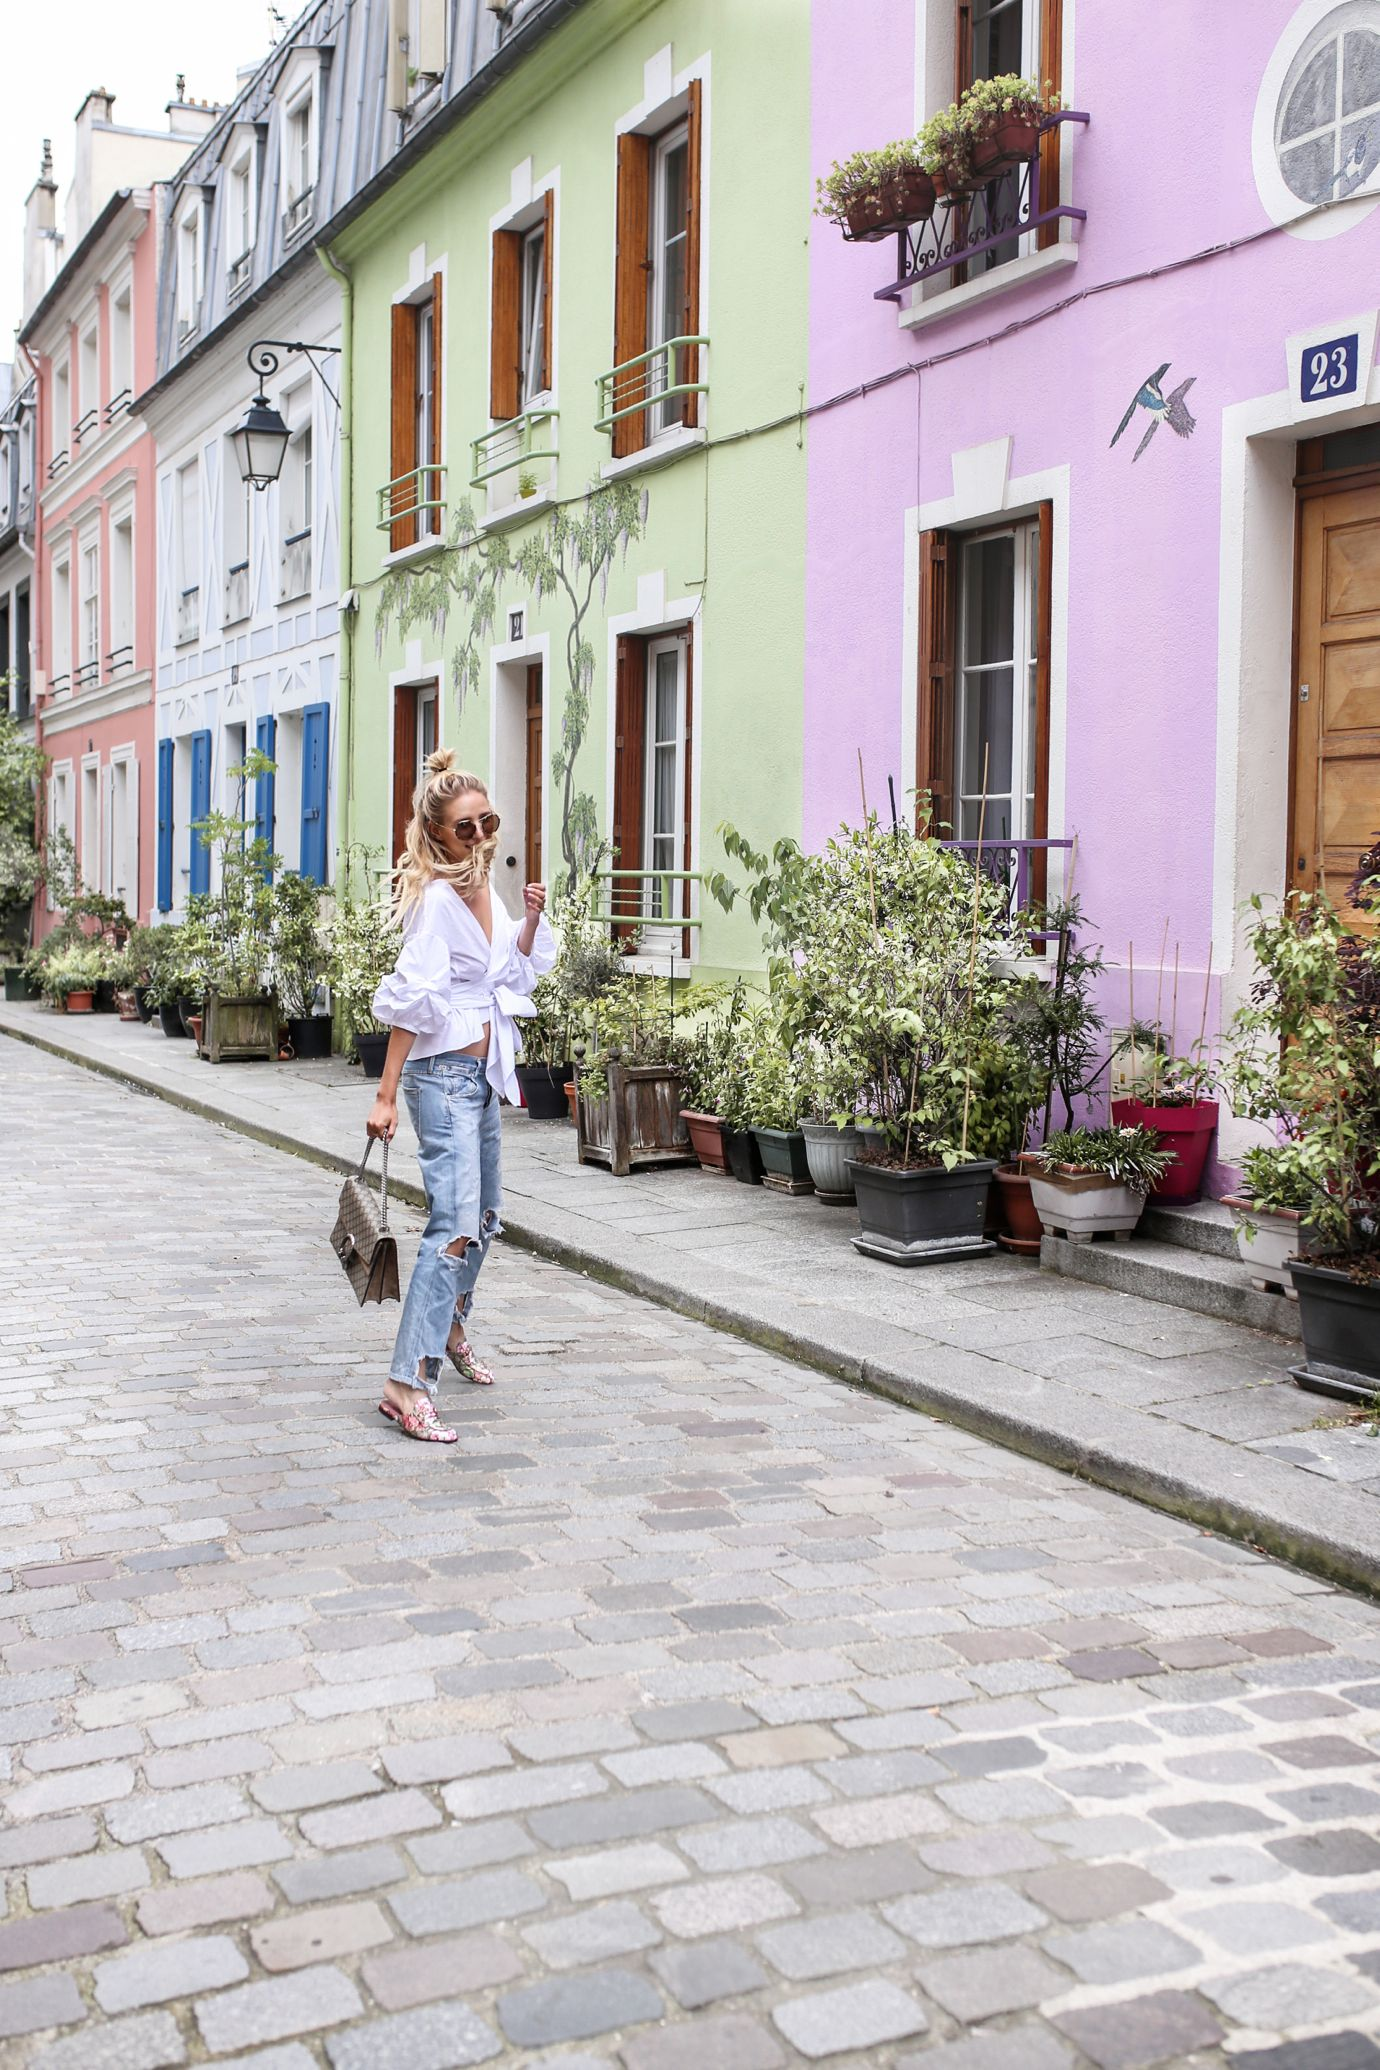 Colorful street in Paris: http://www.ohhcouture.com/2016/07/monday-update-27/ | Gucci slipper, Dionysus bag | #ohhcouture #leoniehanne